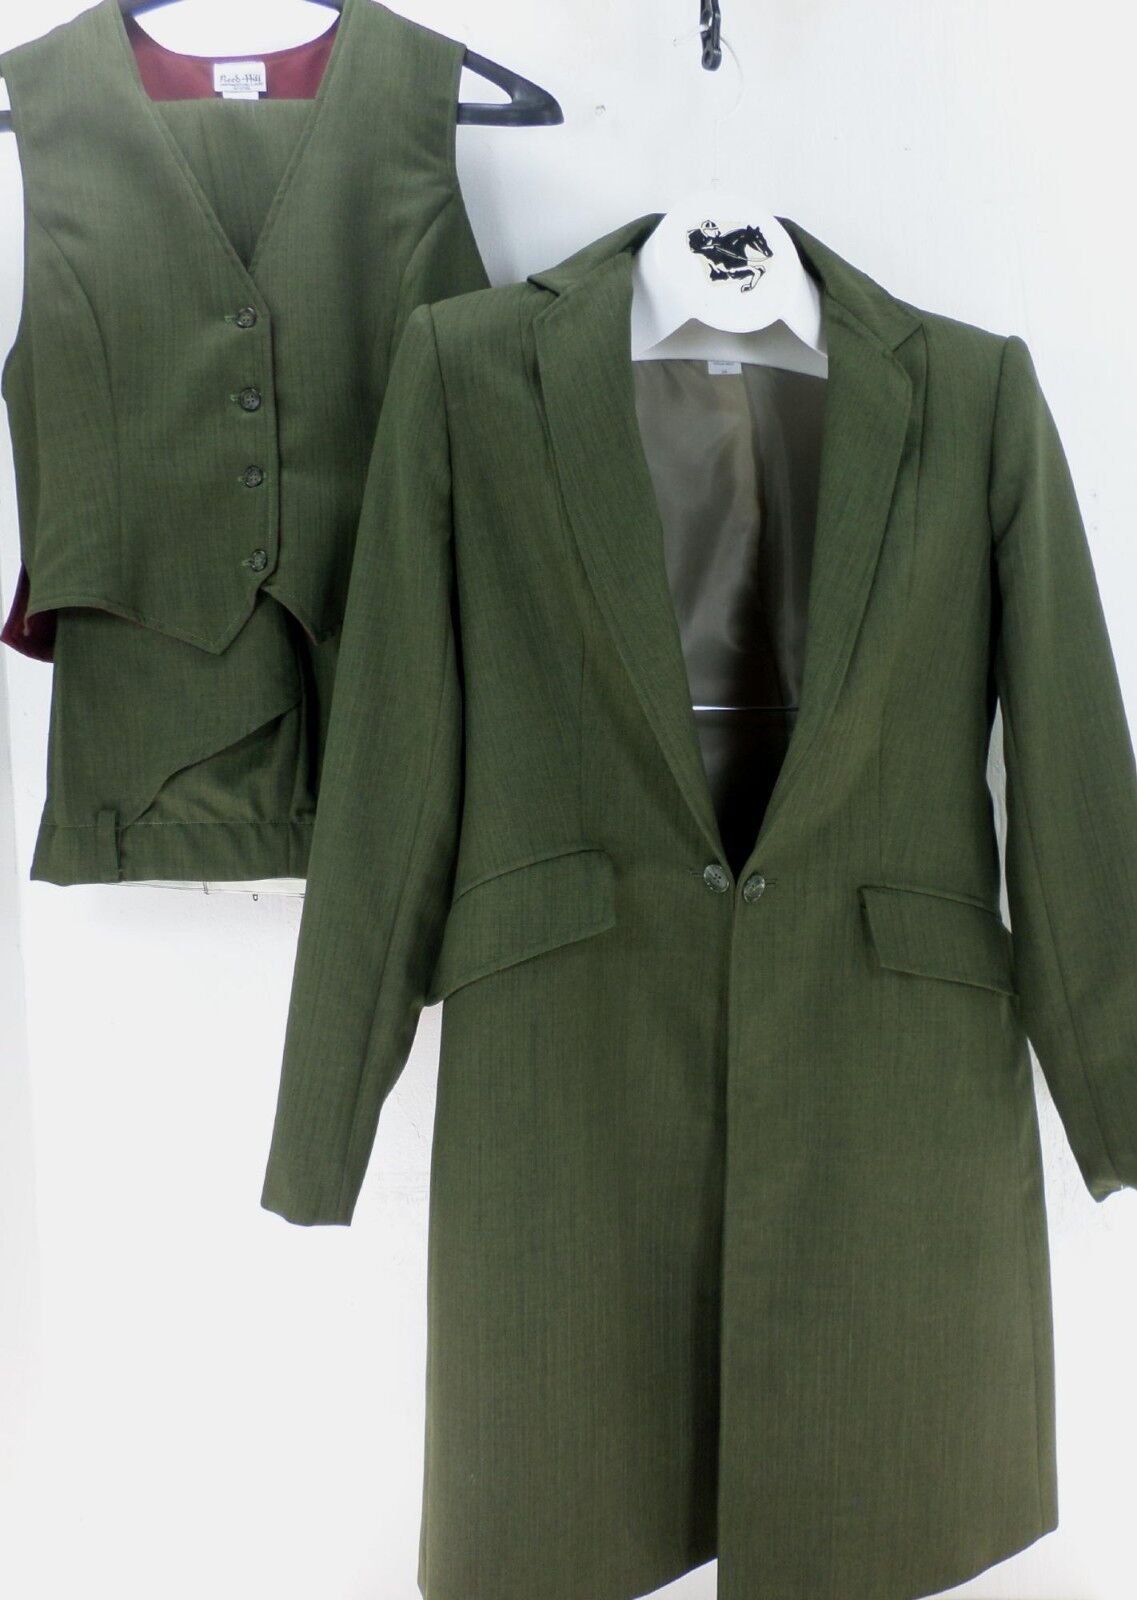 Reed Hill Saddleseat Ld 3p suit Olive pinstripe poly size 10 - USA